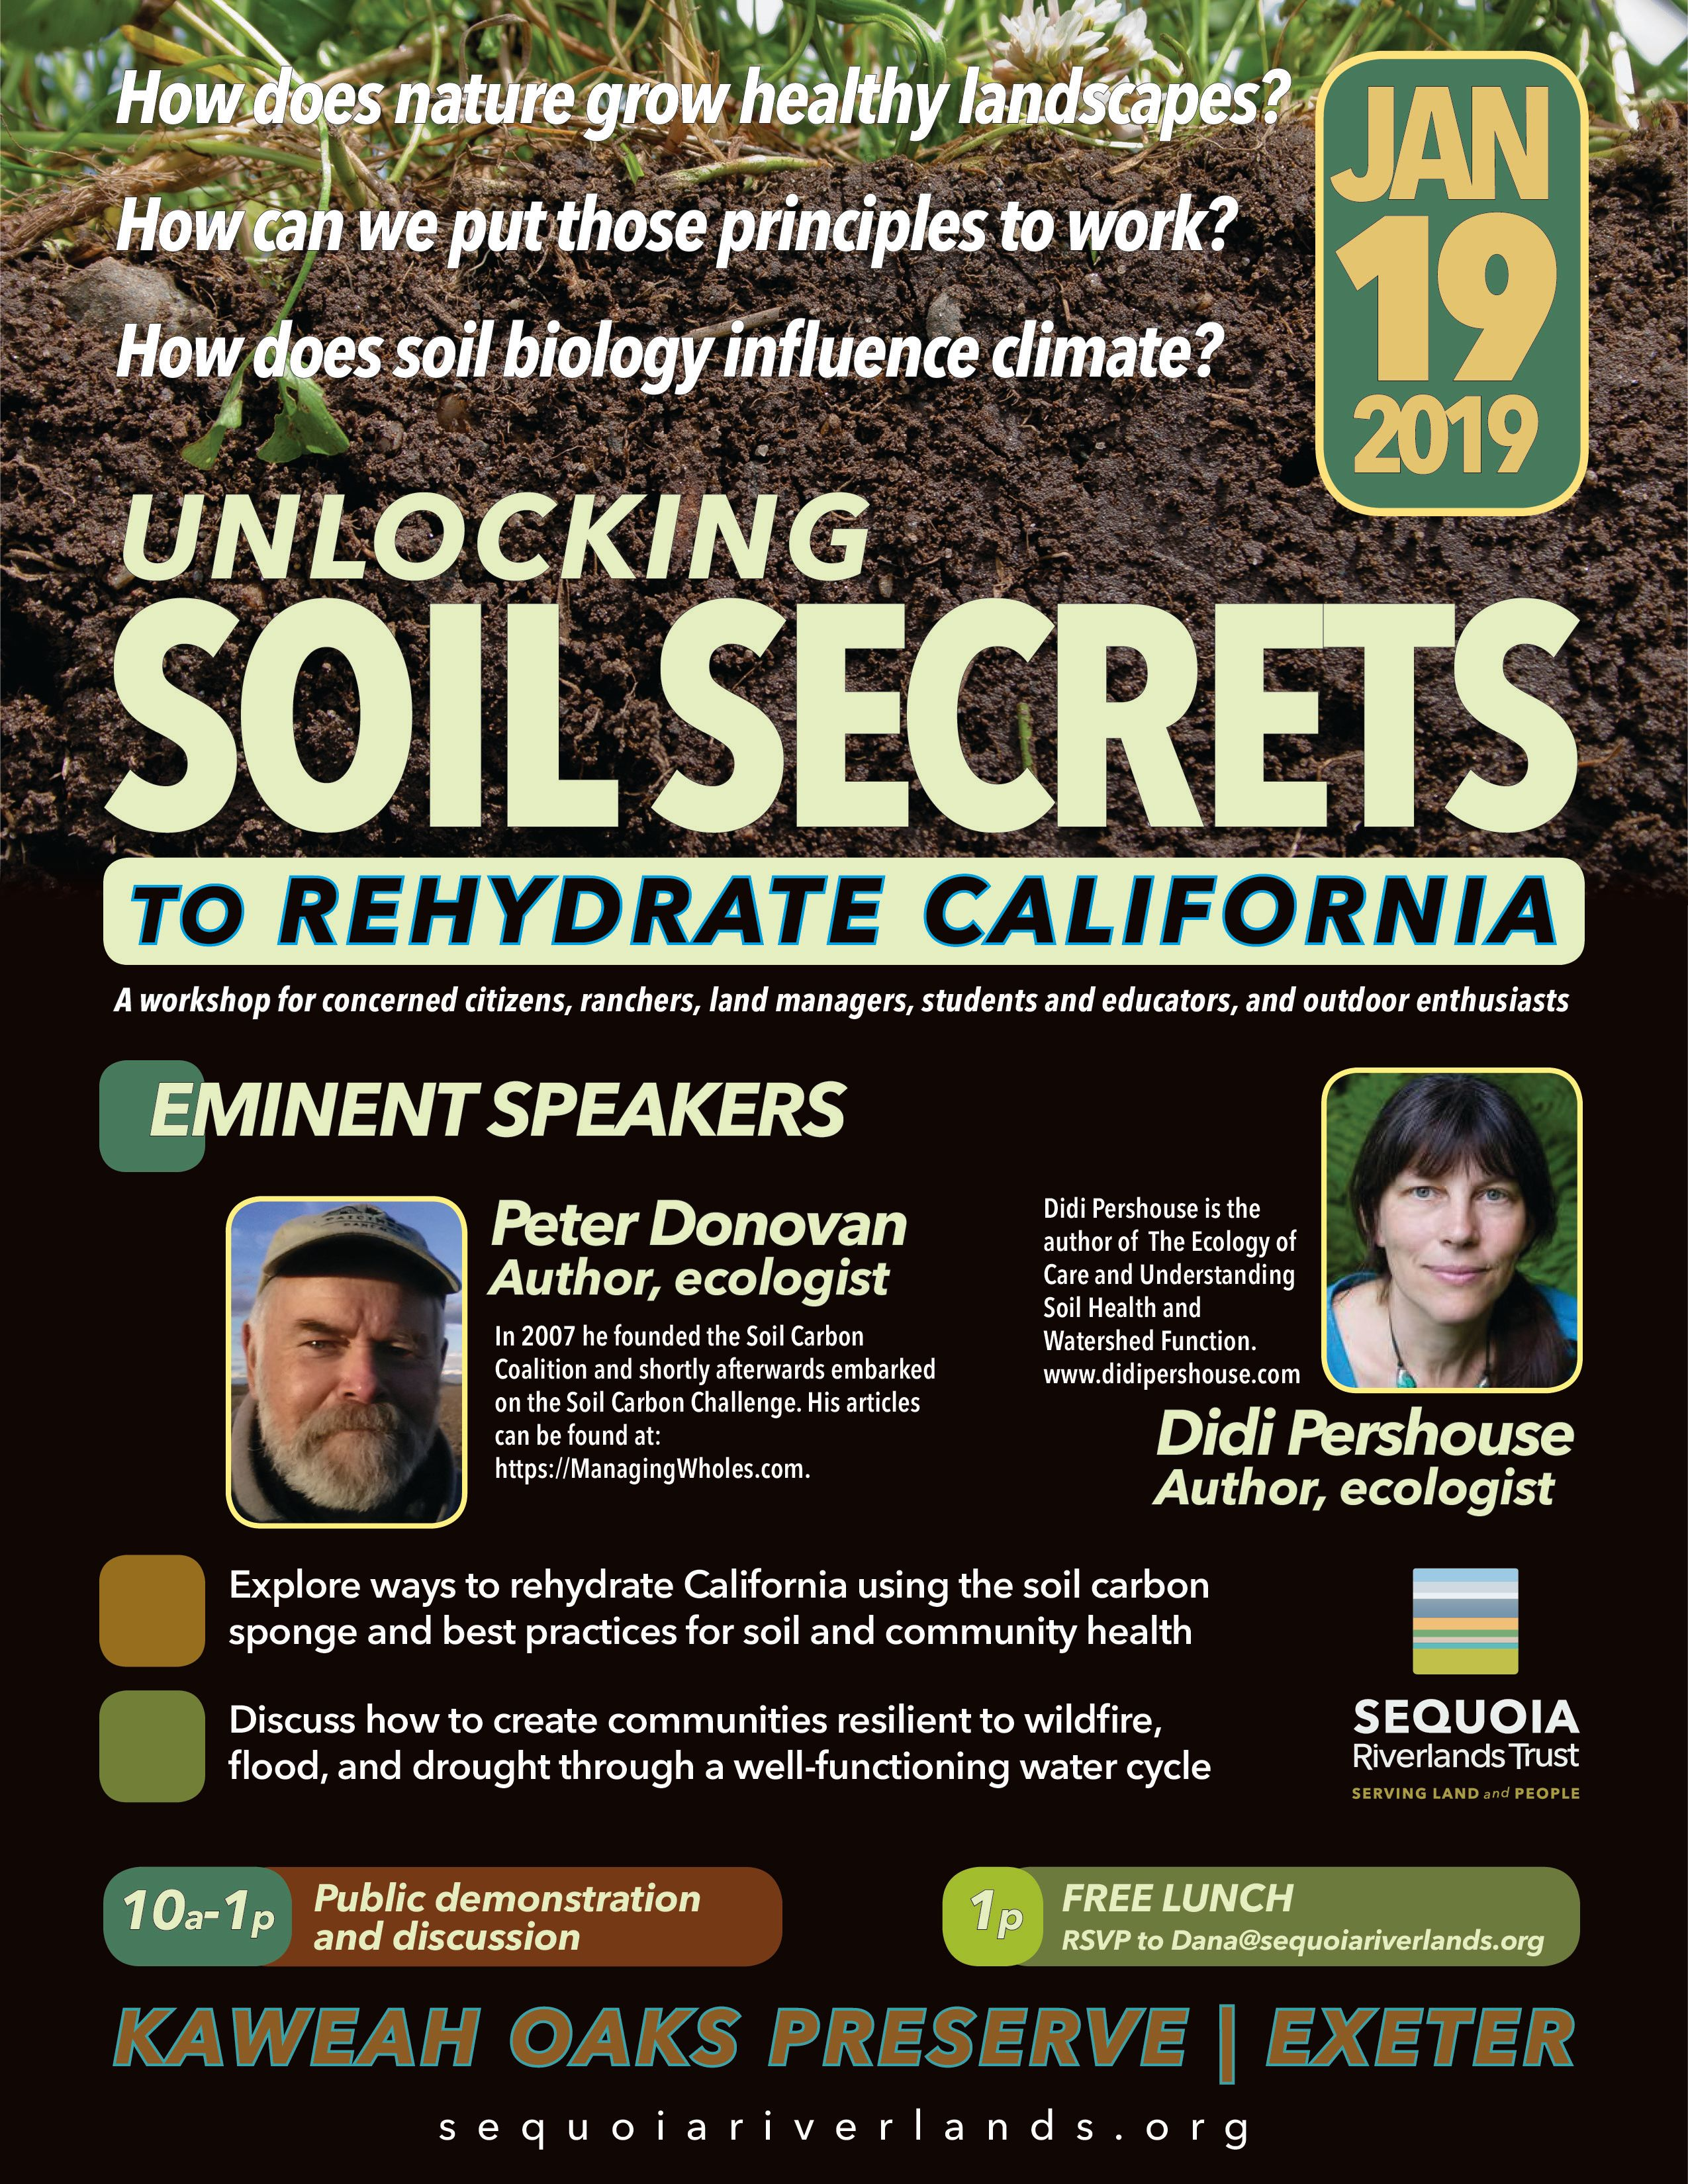 Jan. 19 at Kaweah Oaks: Unlocking Soil Secrets to Rehydrate California